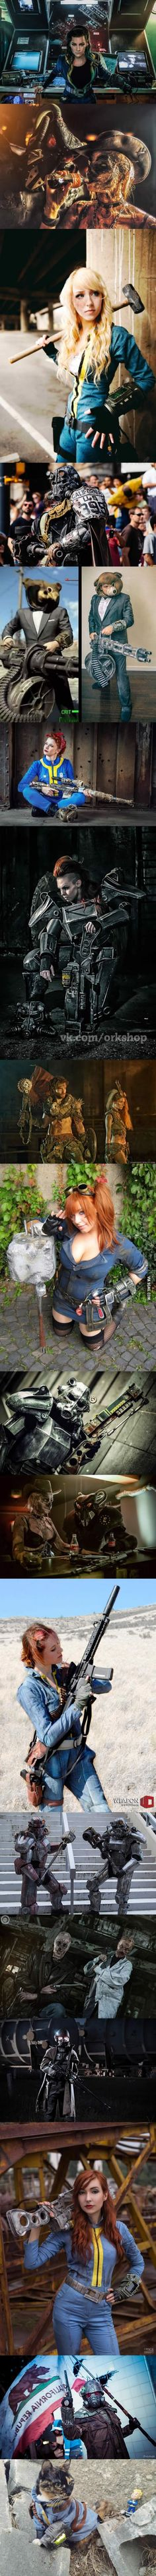 18 Epic Fallout Cosplays That Will Make You Excited For The Apocalypse